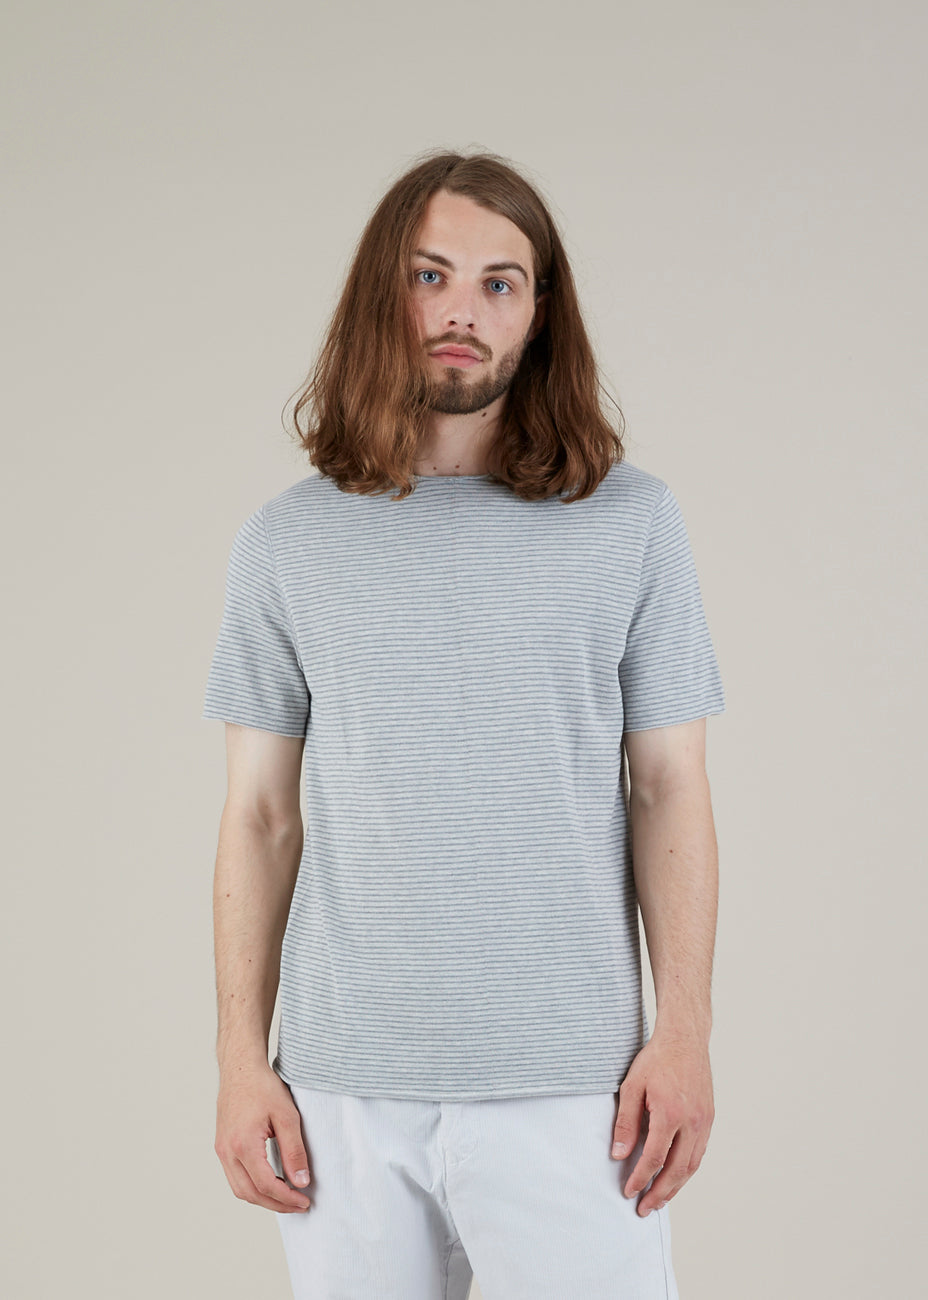 Hannes Roether Men's Funes Knit Tee